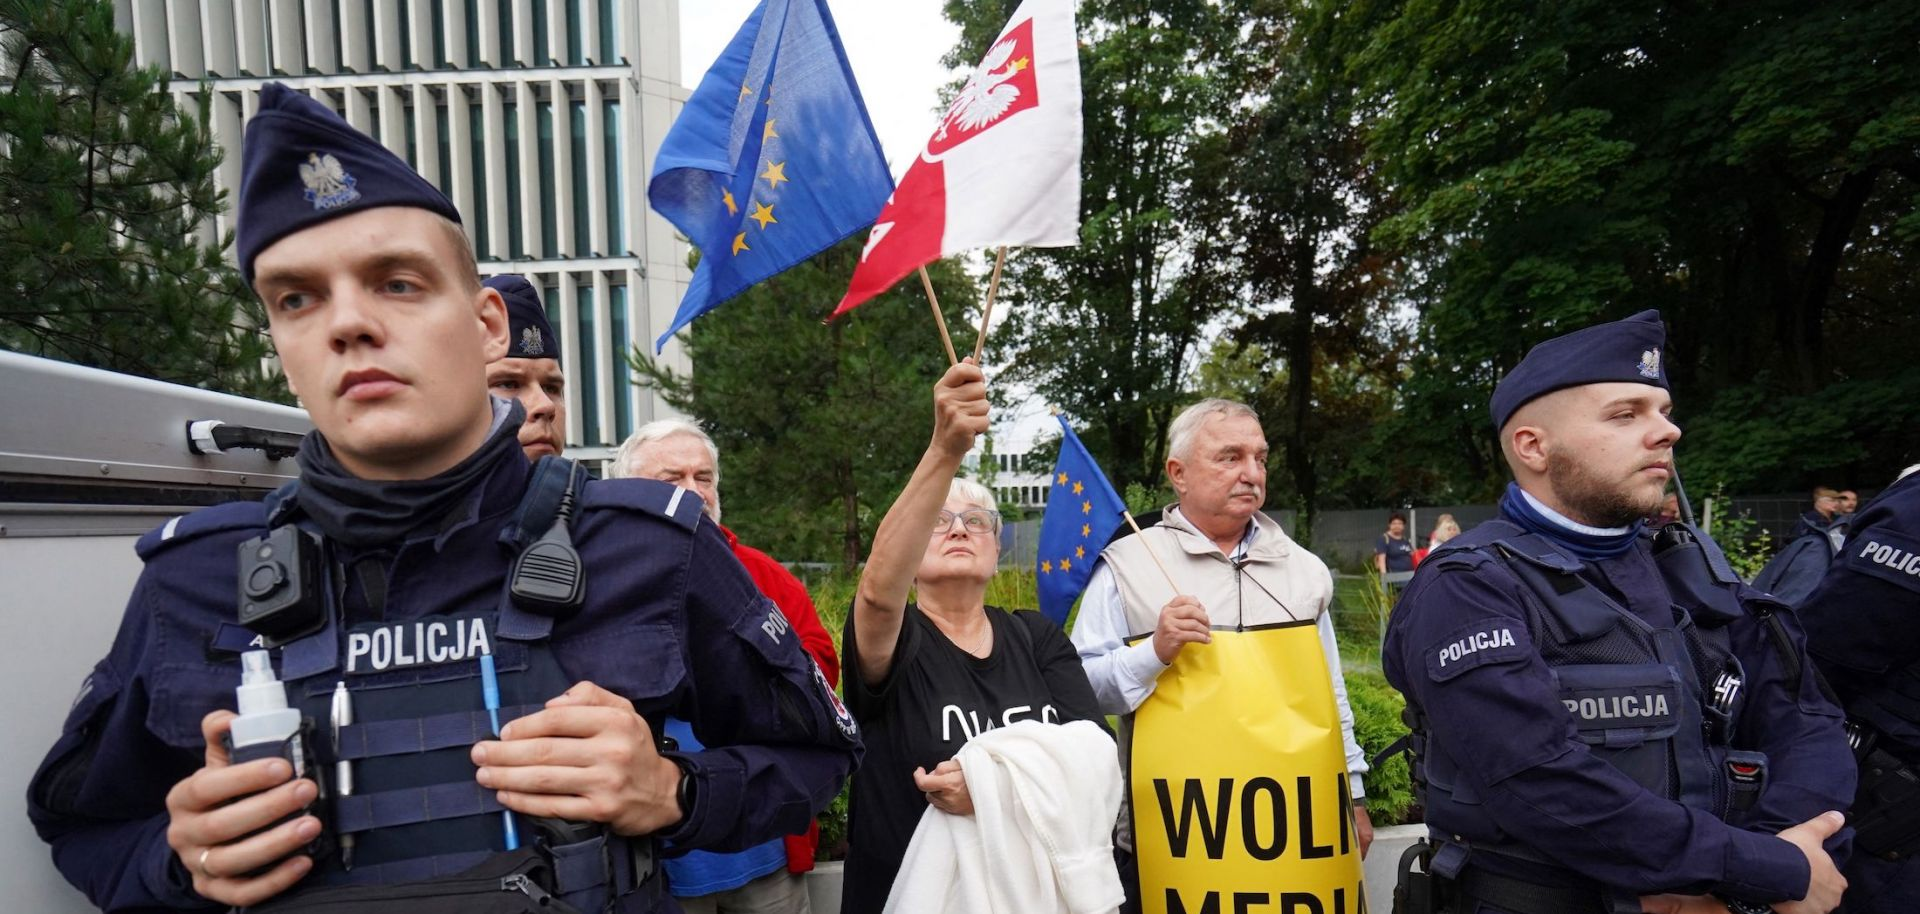 Police stand guard in Warsaw, Poland, as demonstrators holding EU and Polish flags protest the country's proposed media law on Aug. 10, 2021.